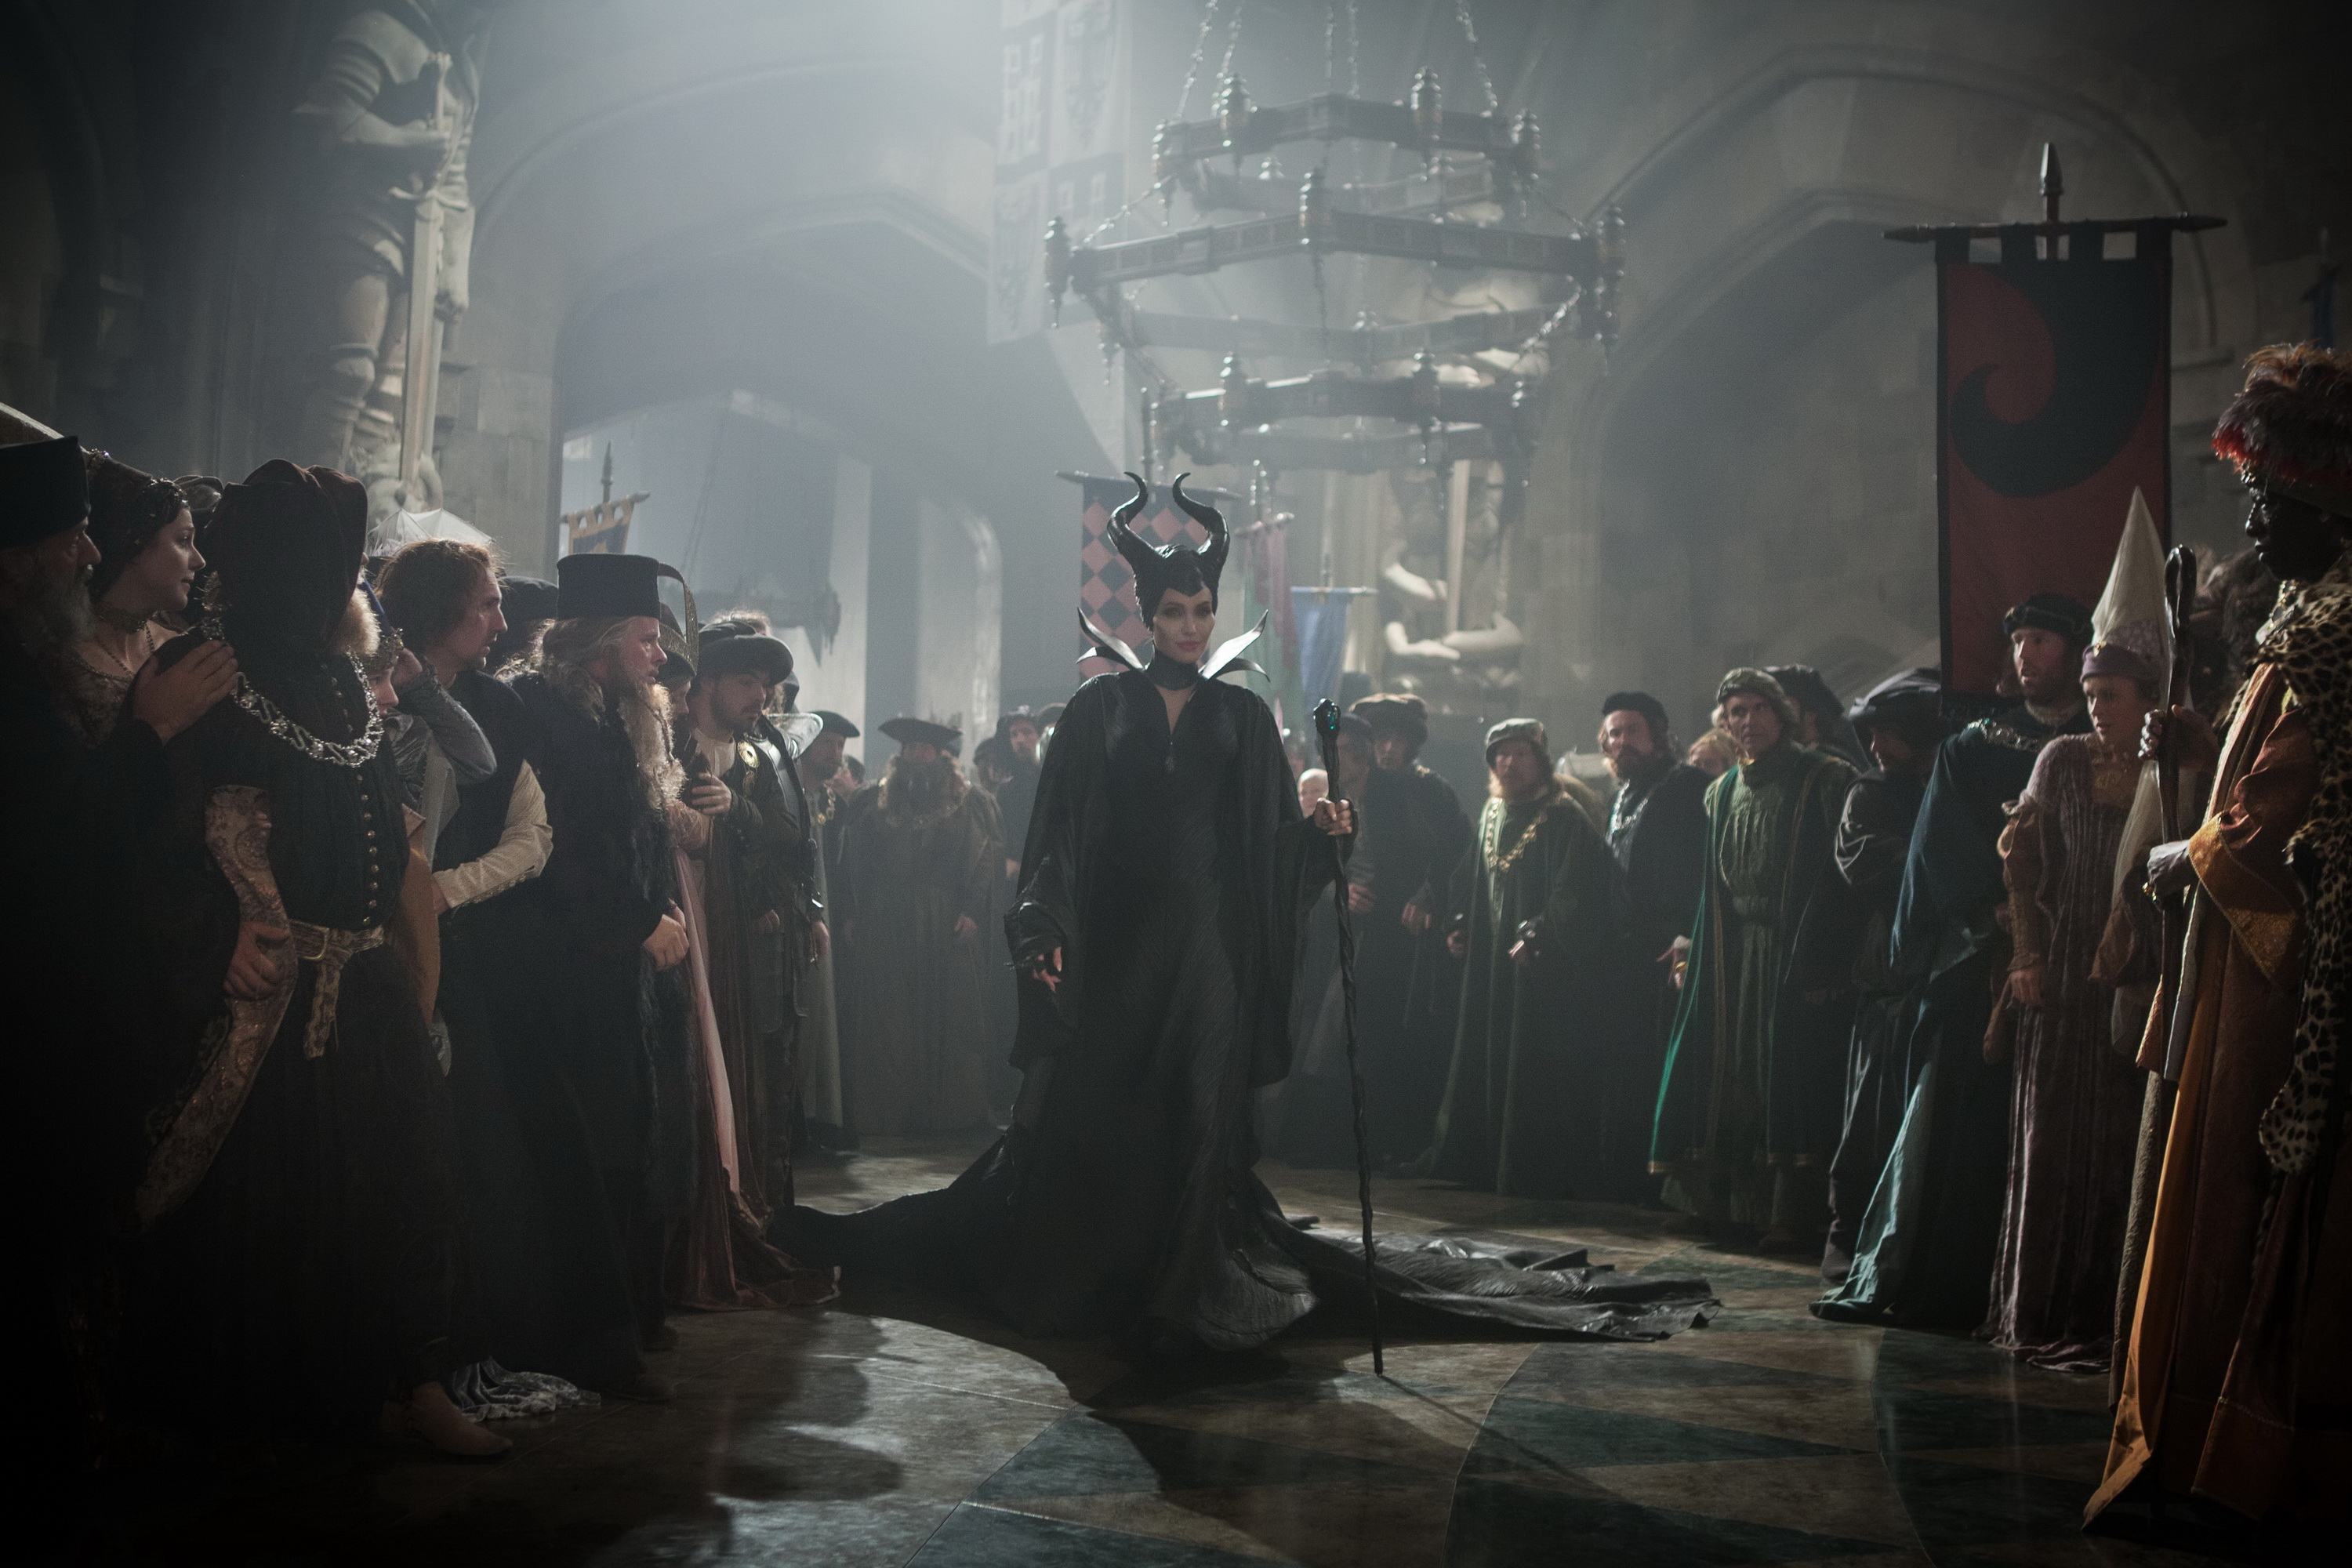 http://img3.wikia.nocookie.net/__cb20140325214725/disney/images/3/37/Maleficent-(2014)-52.jpg